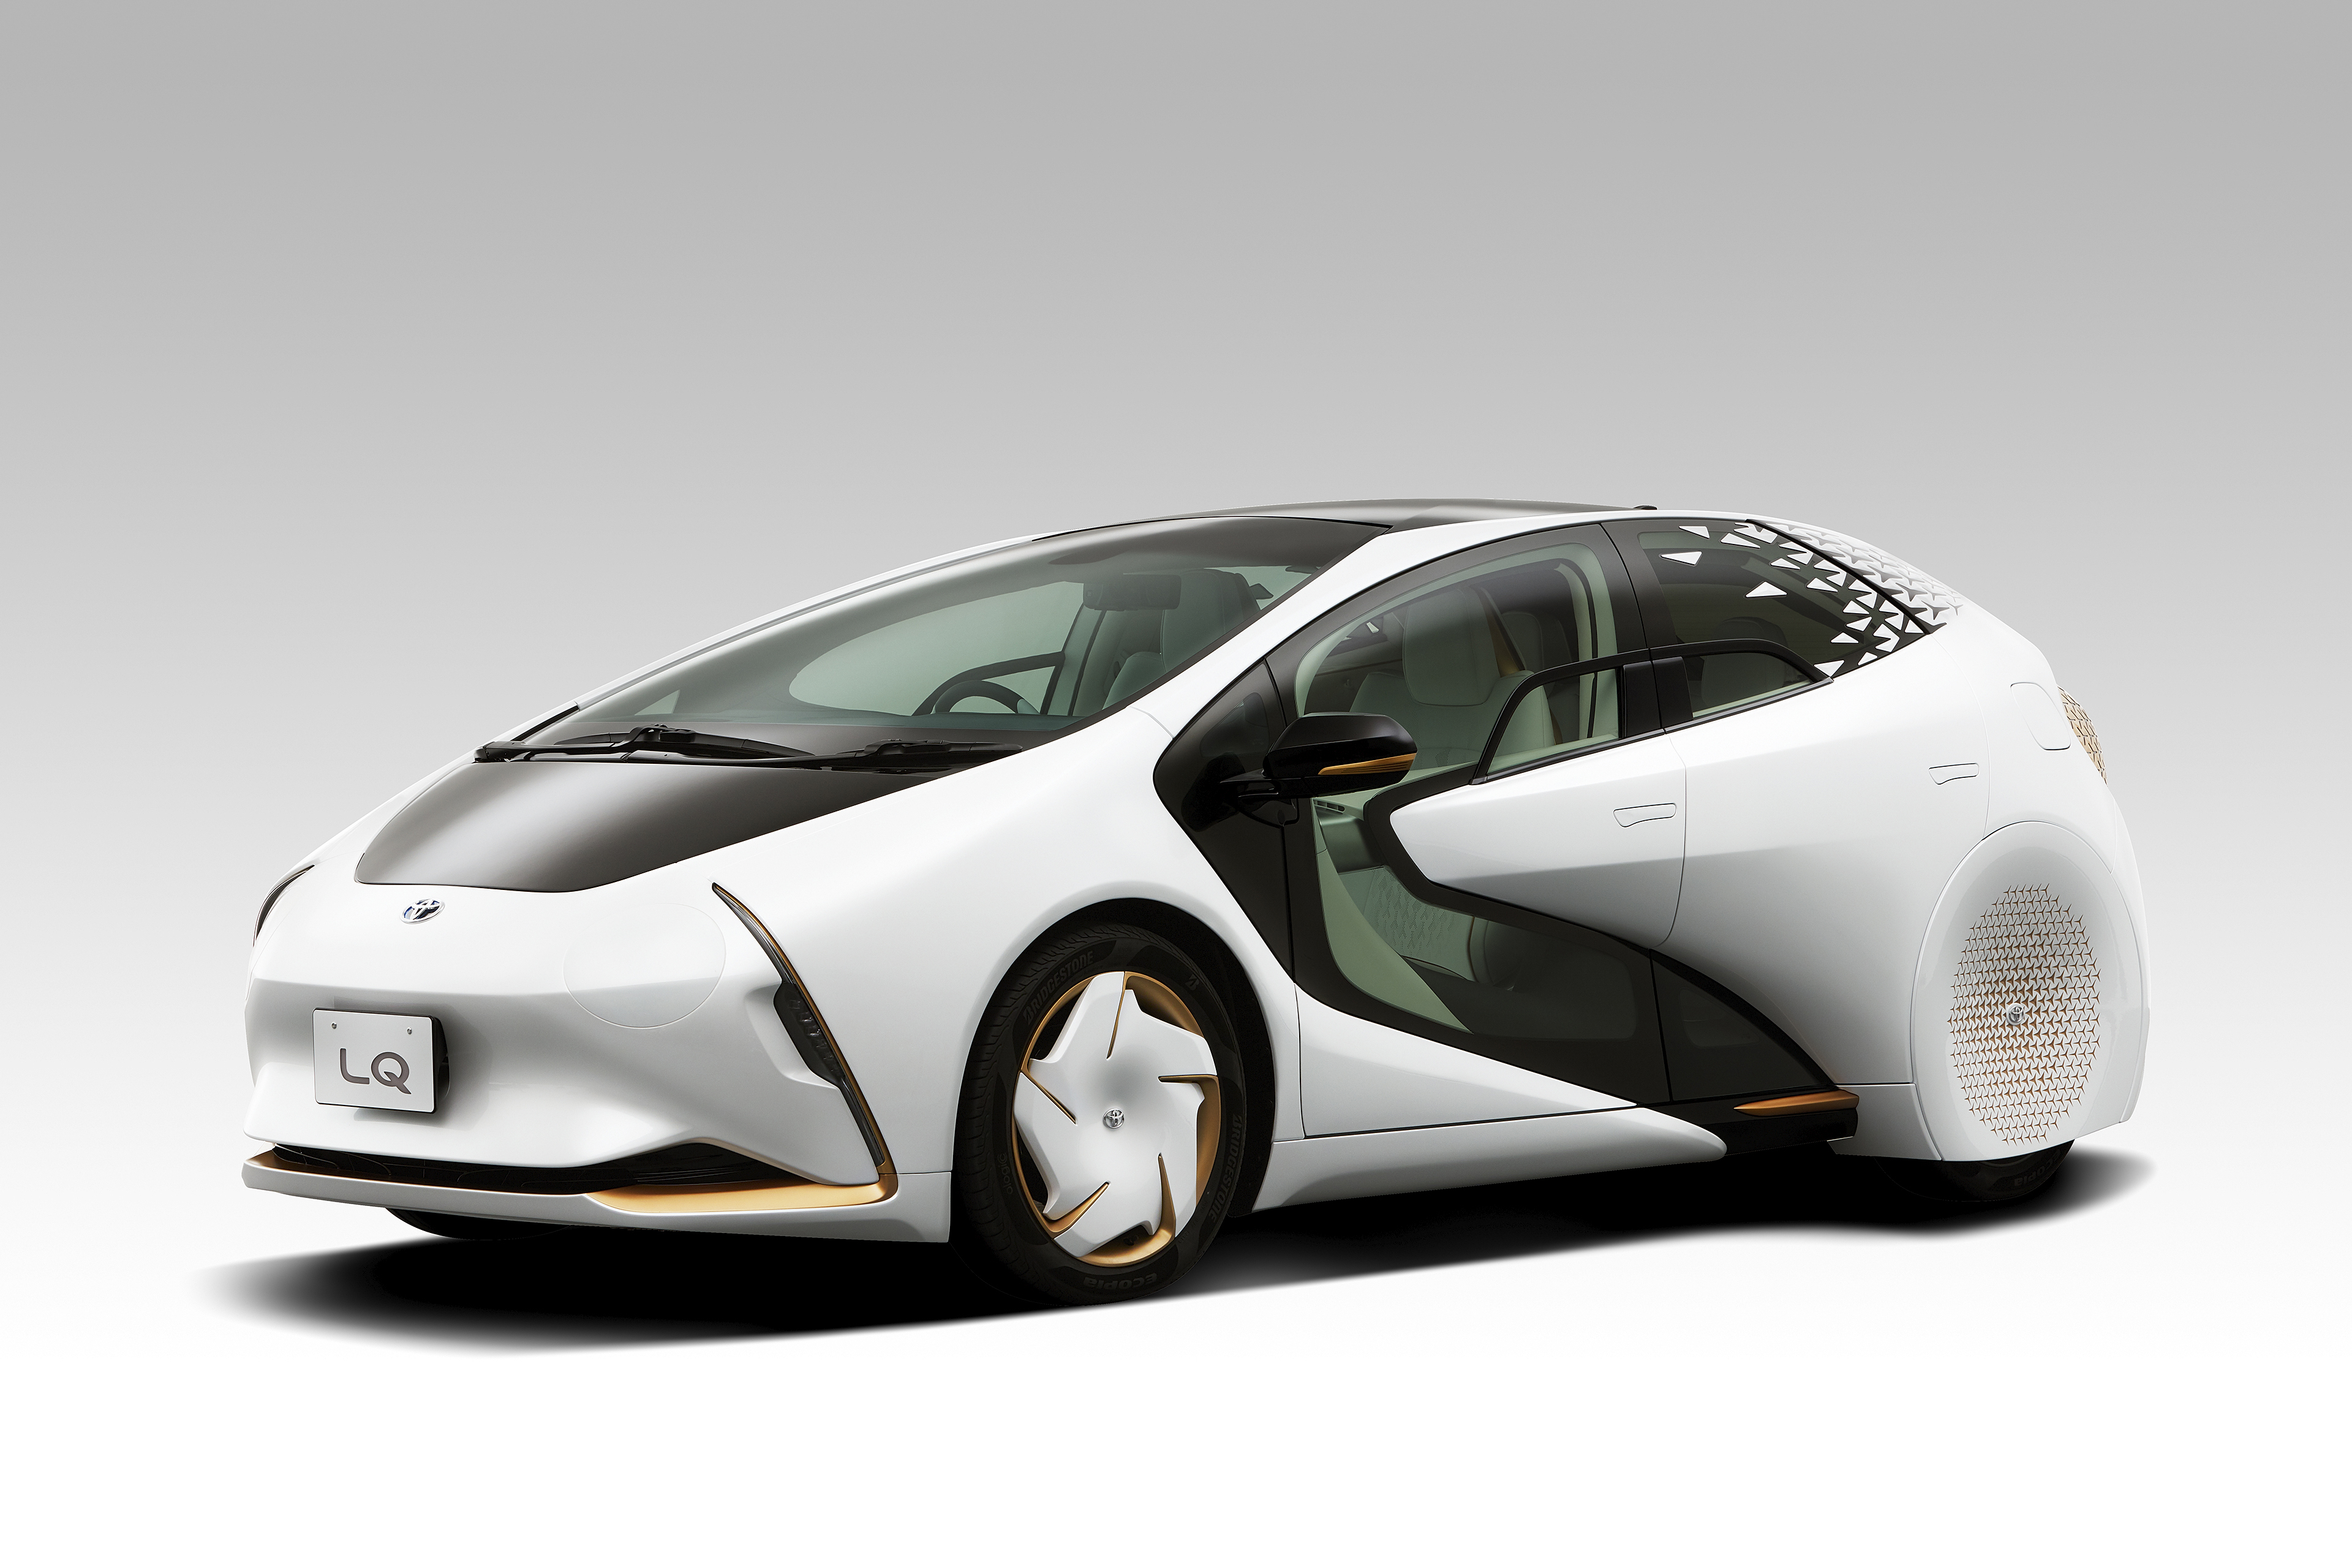 Toyota's LQ concept car will make friends with you via its onboard ...